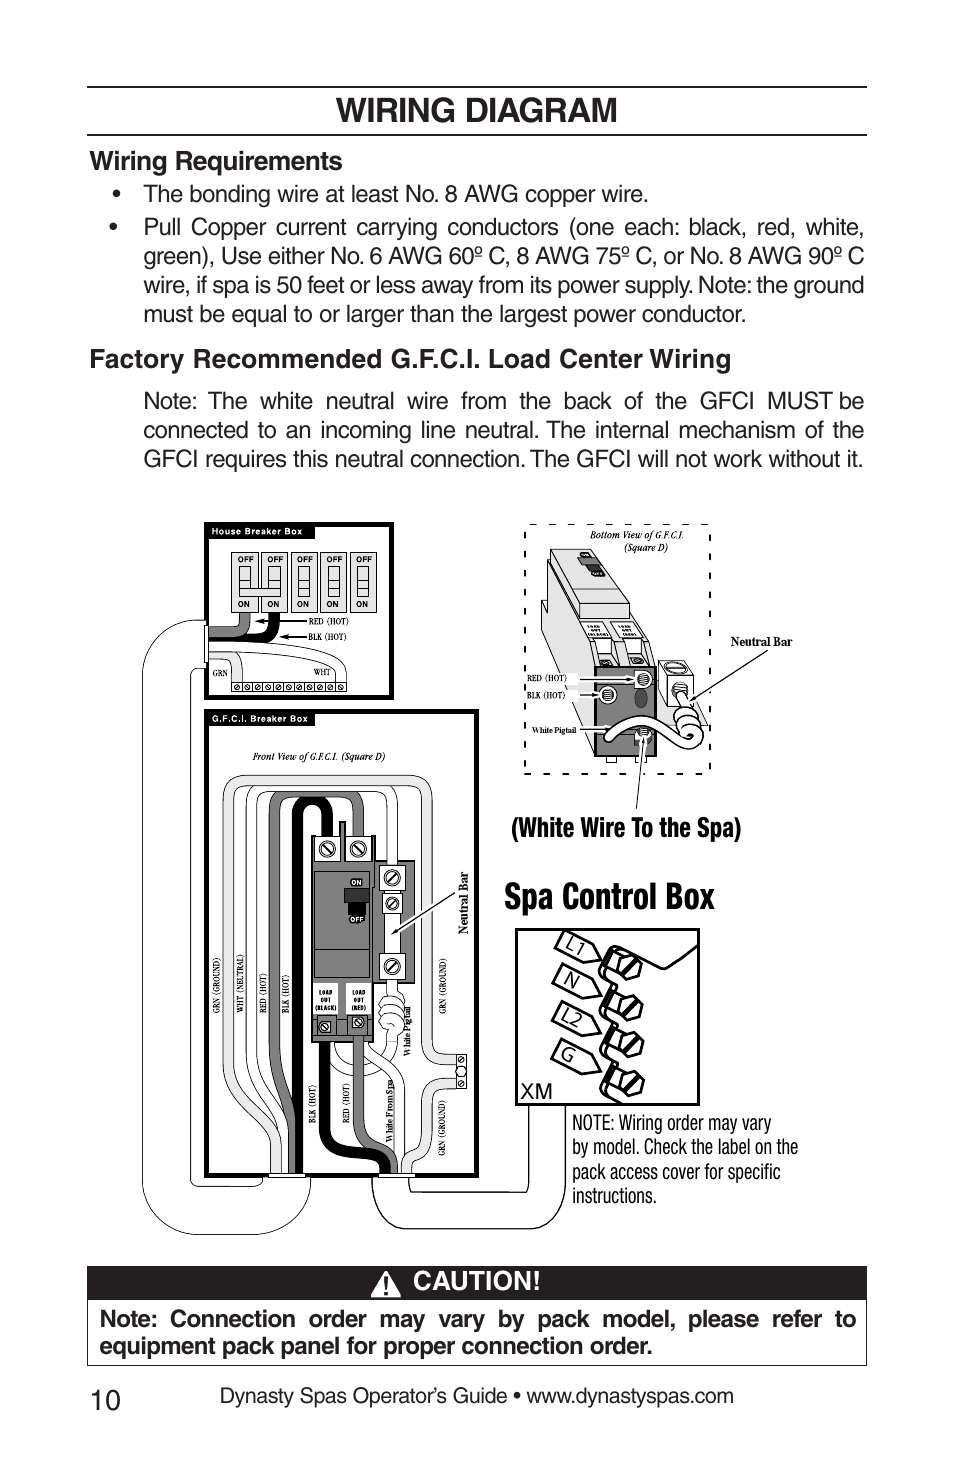 medium resolution of wiring diagram 7hite factory recommended g f c i load center dynasty spas wiring diagram